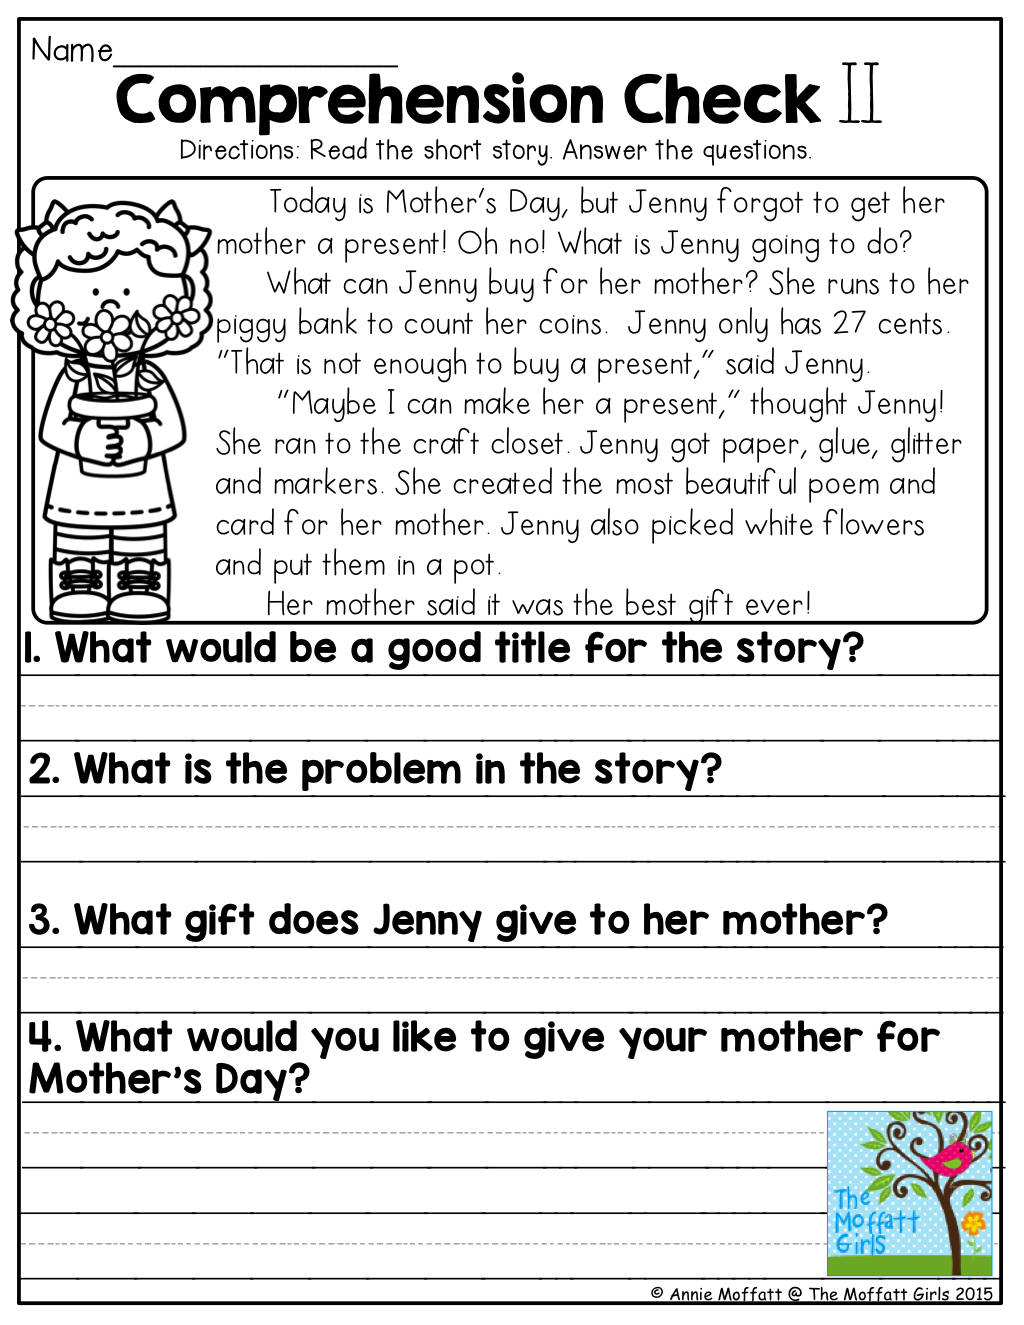 Worksheet Short Stories For Third Grade reading comprehension checks read the short passage and highlight story answer questions tons of other